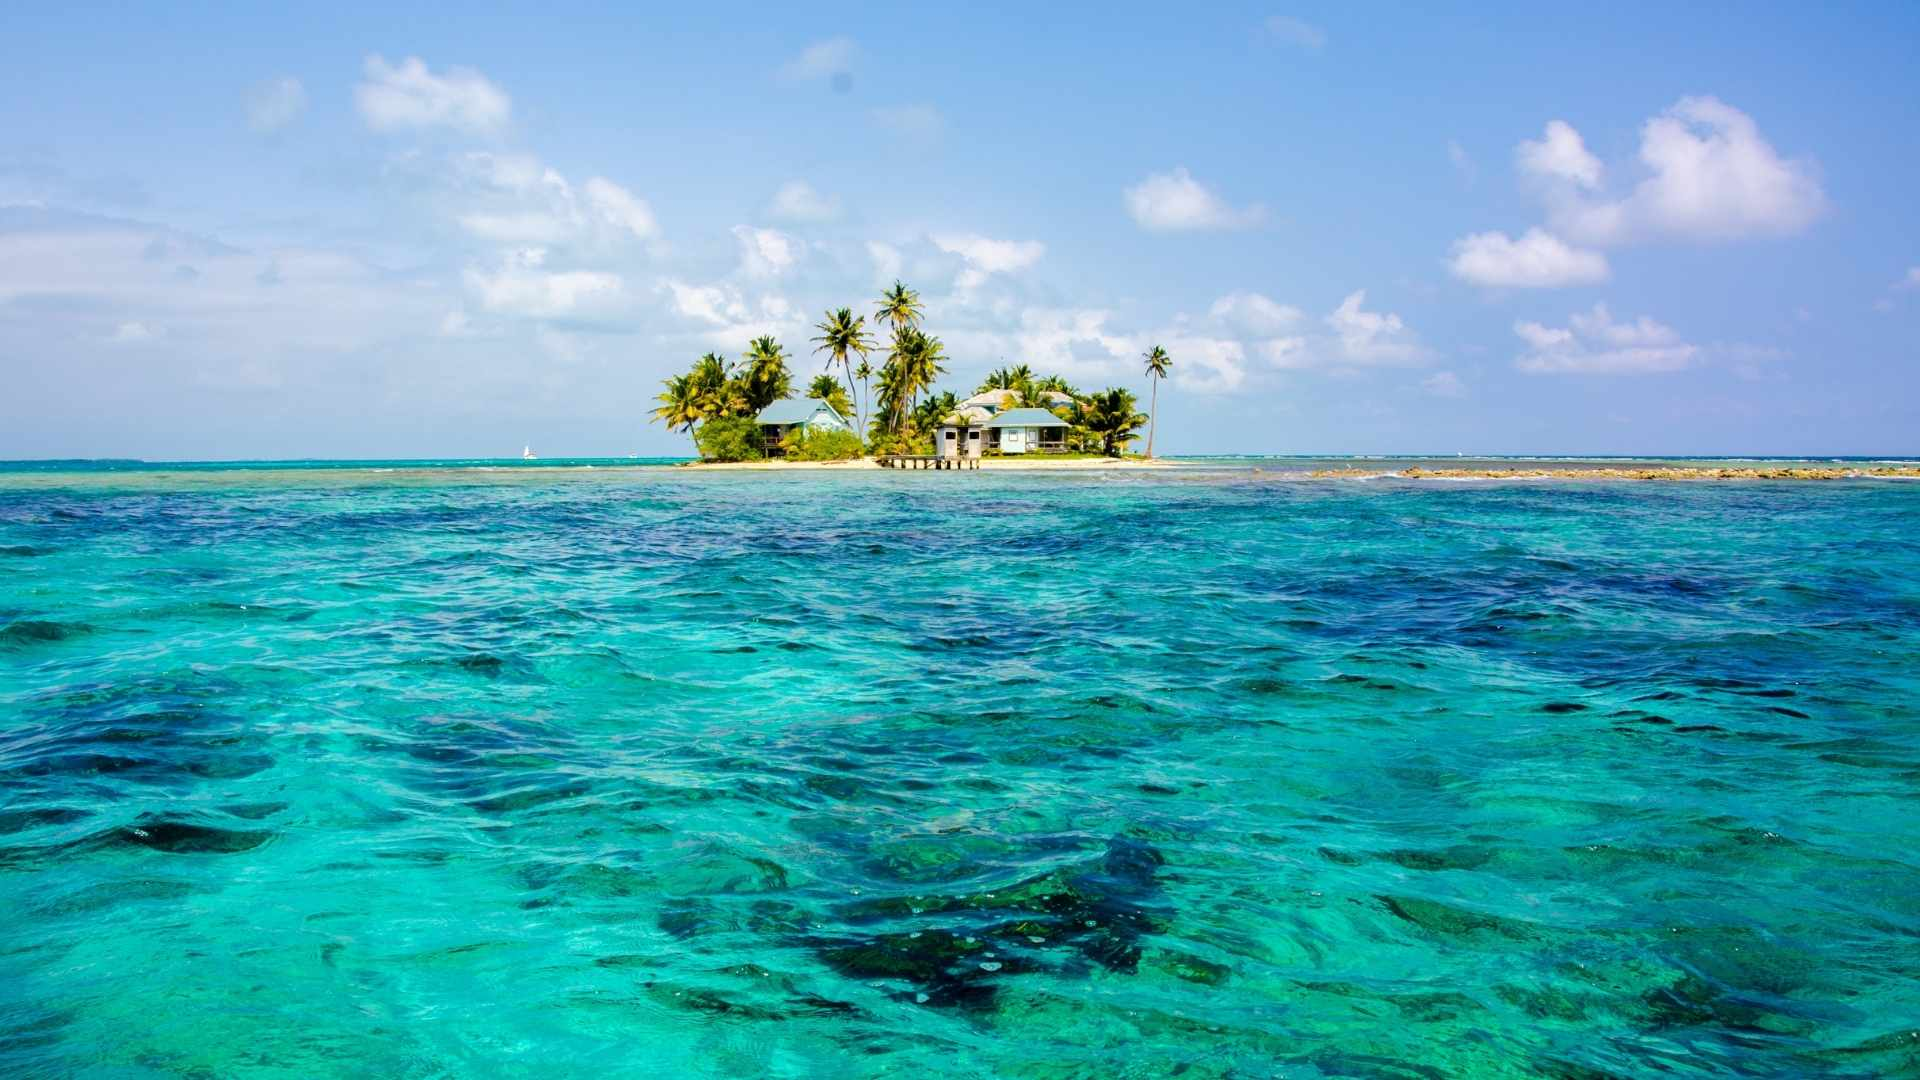 Belize overwater bungalows